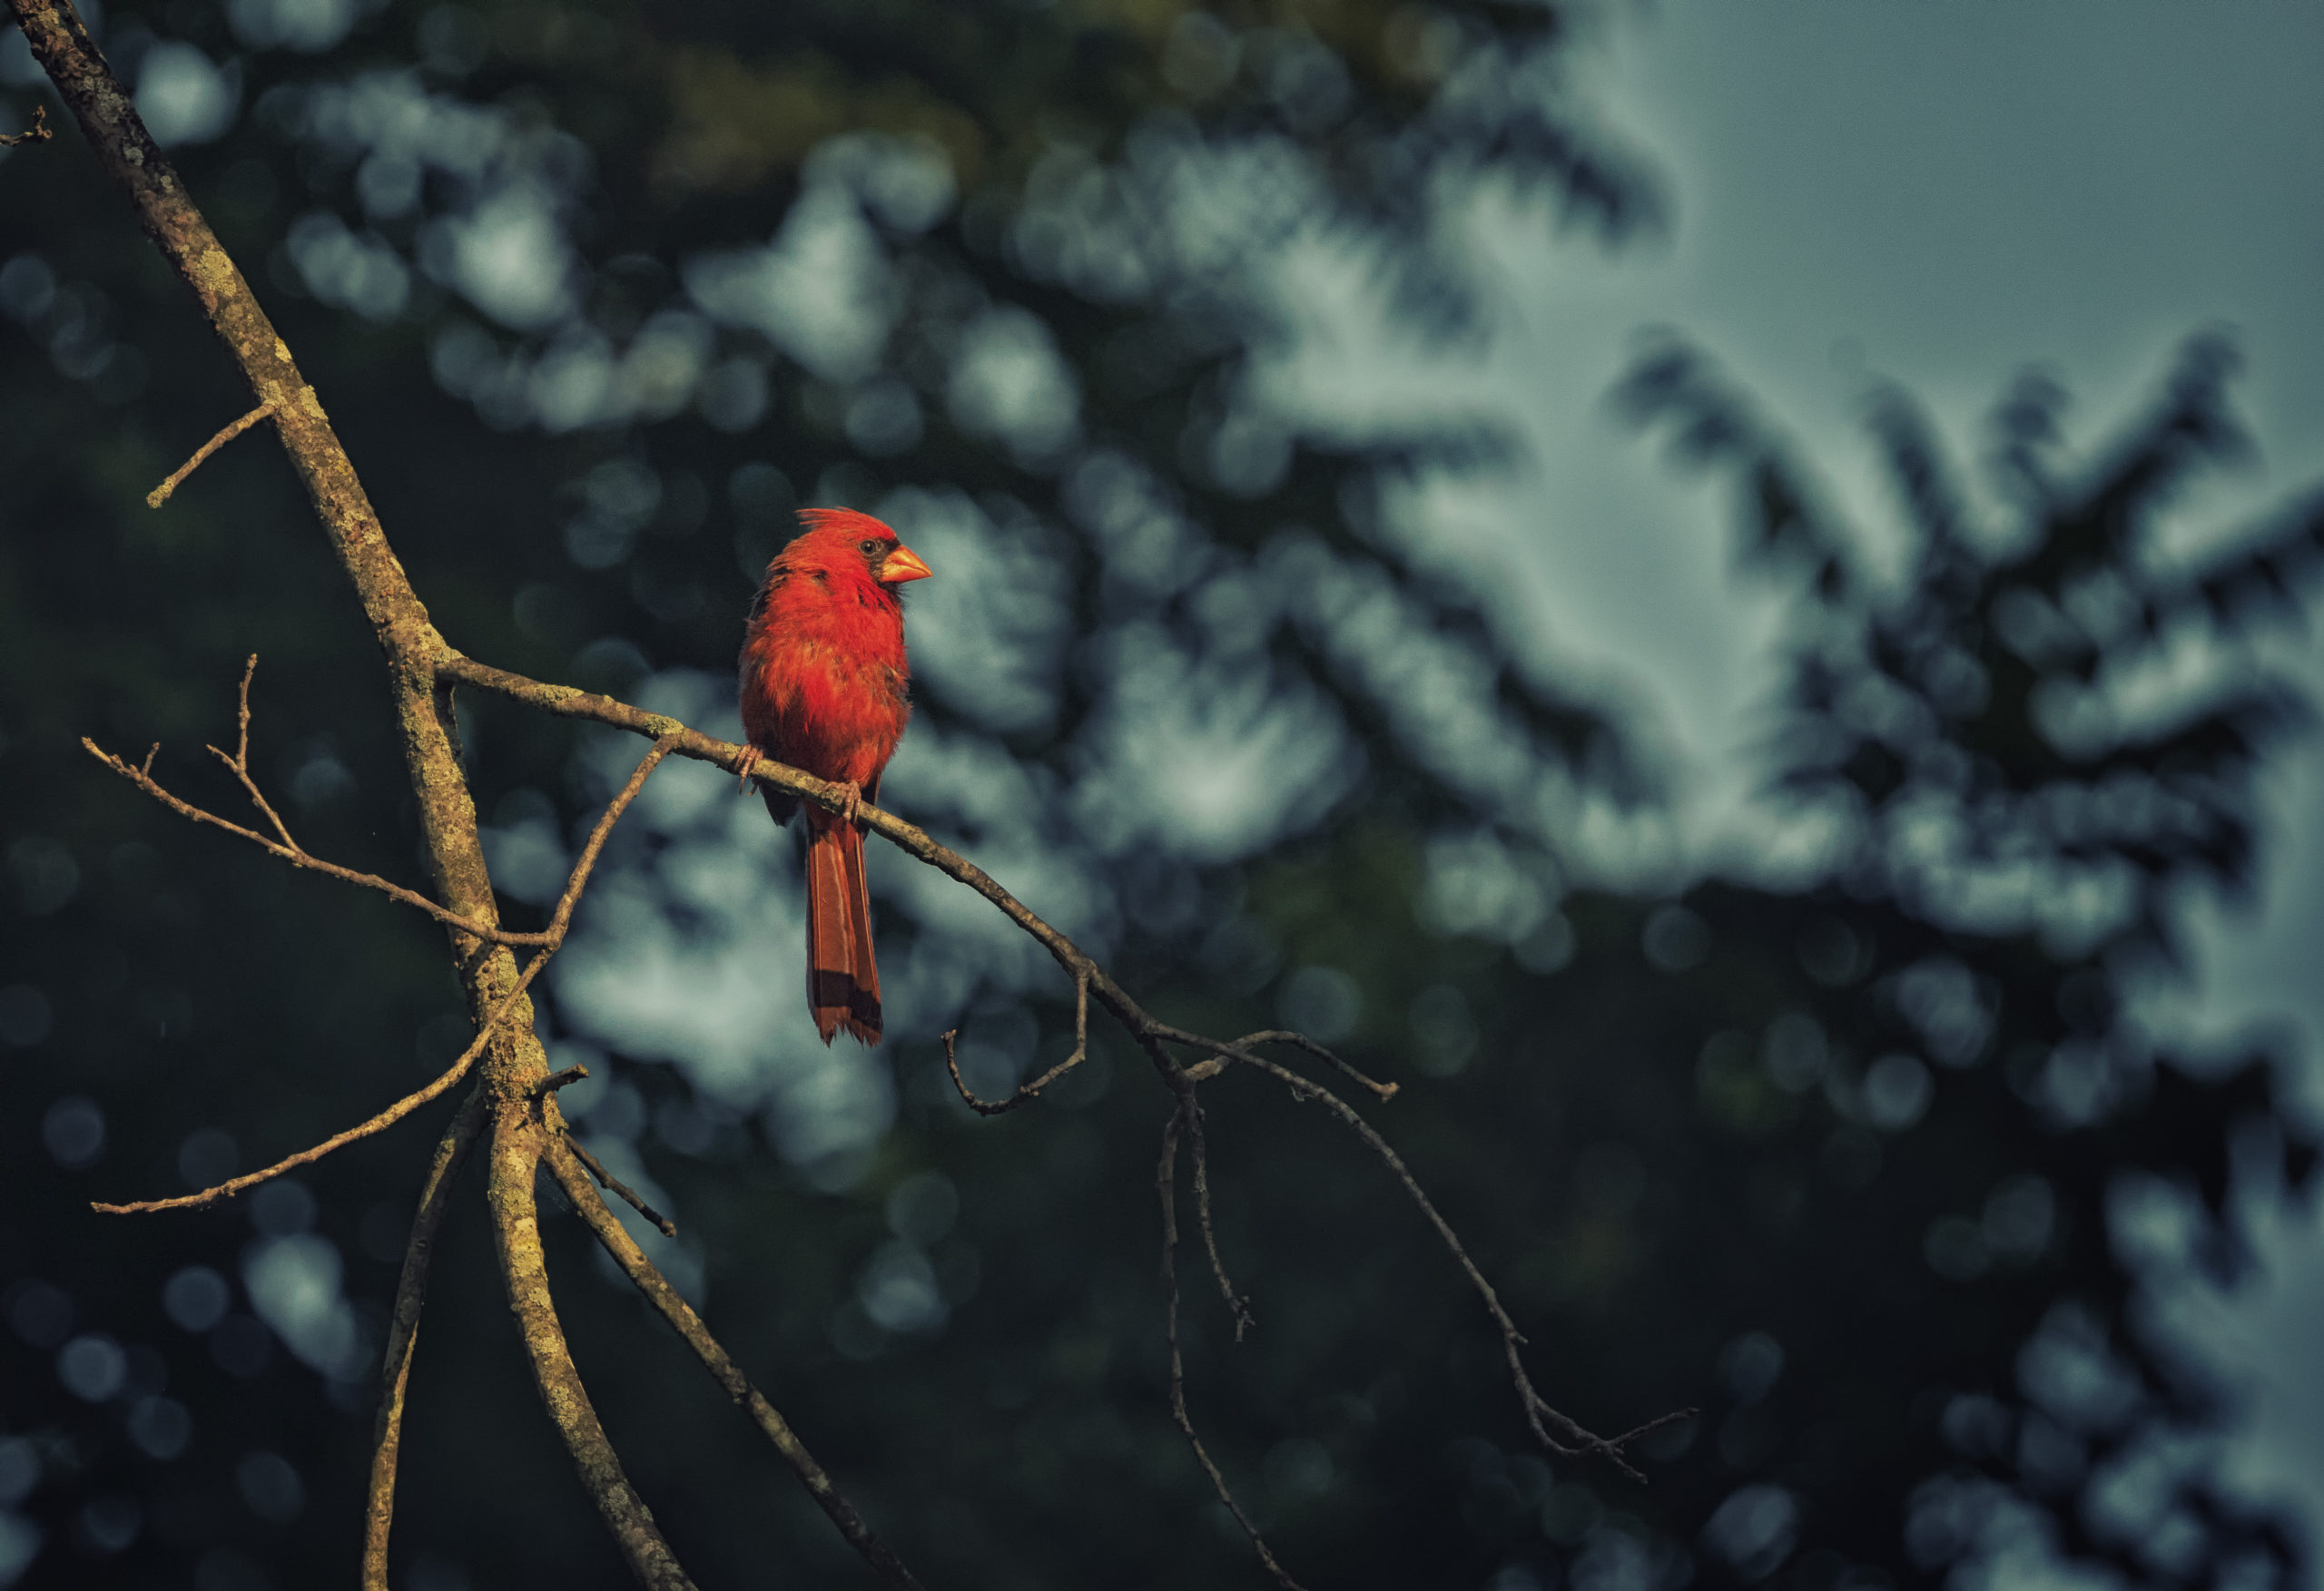 A male cardinal sits on a tree branch. Out of focus leaves are in the sky in the background.